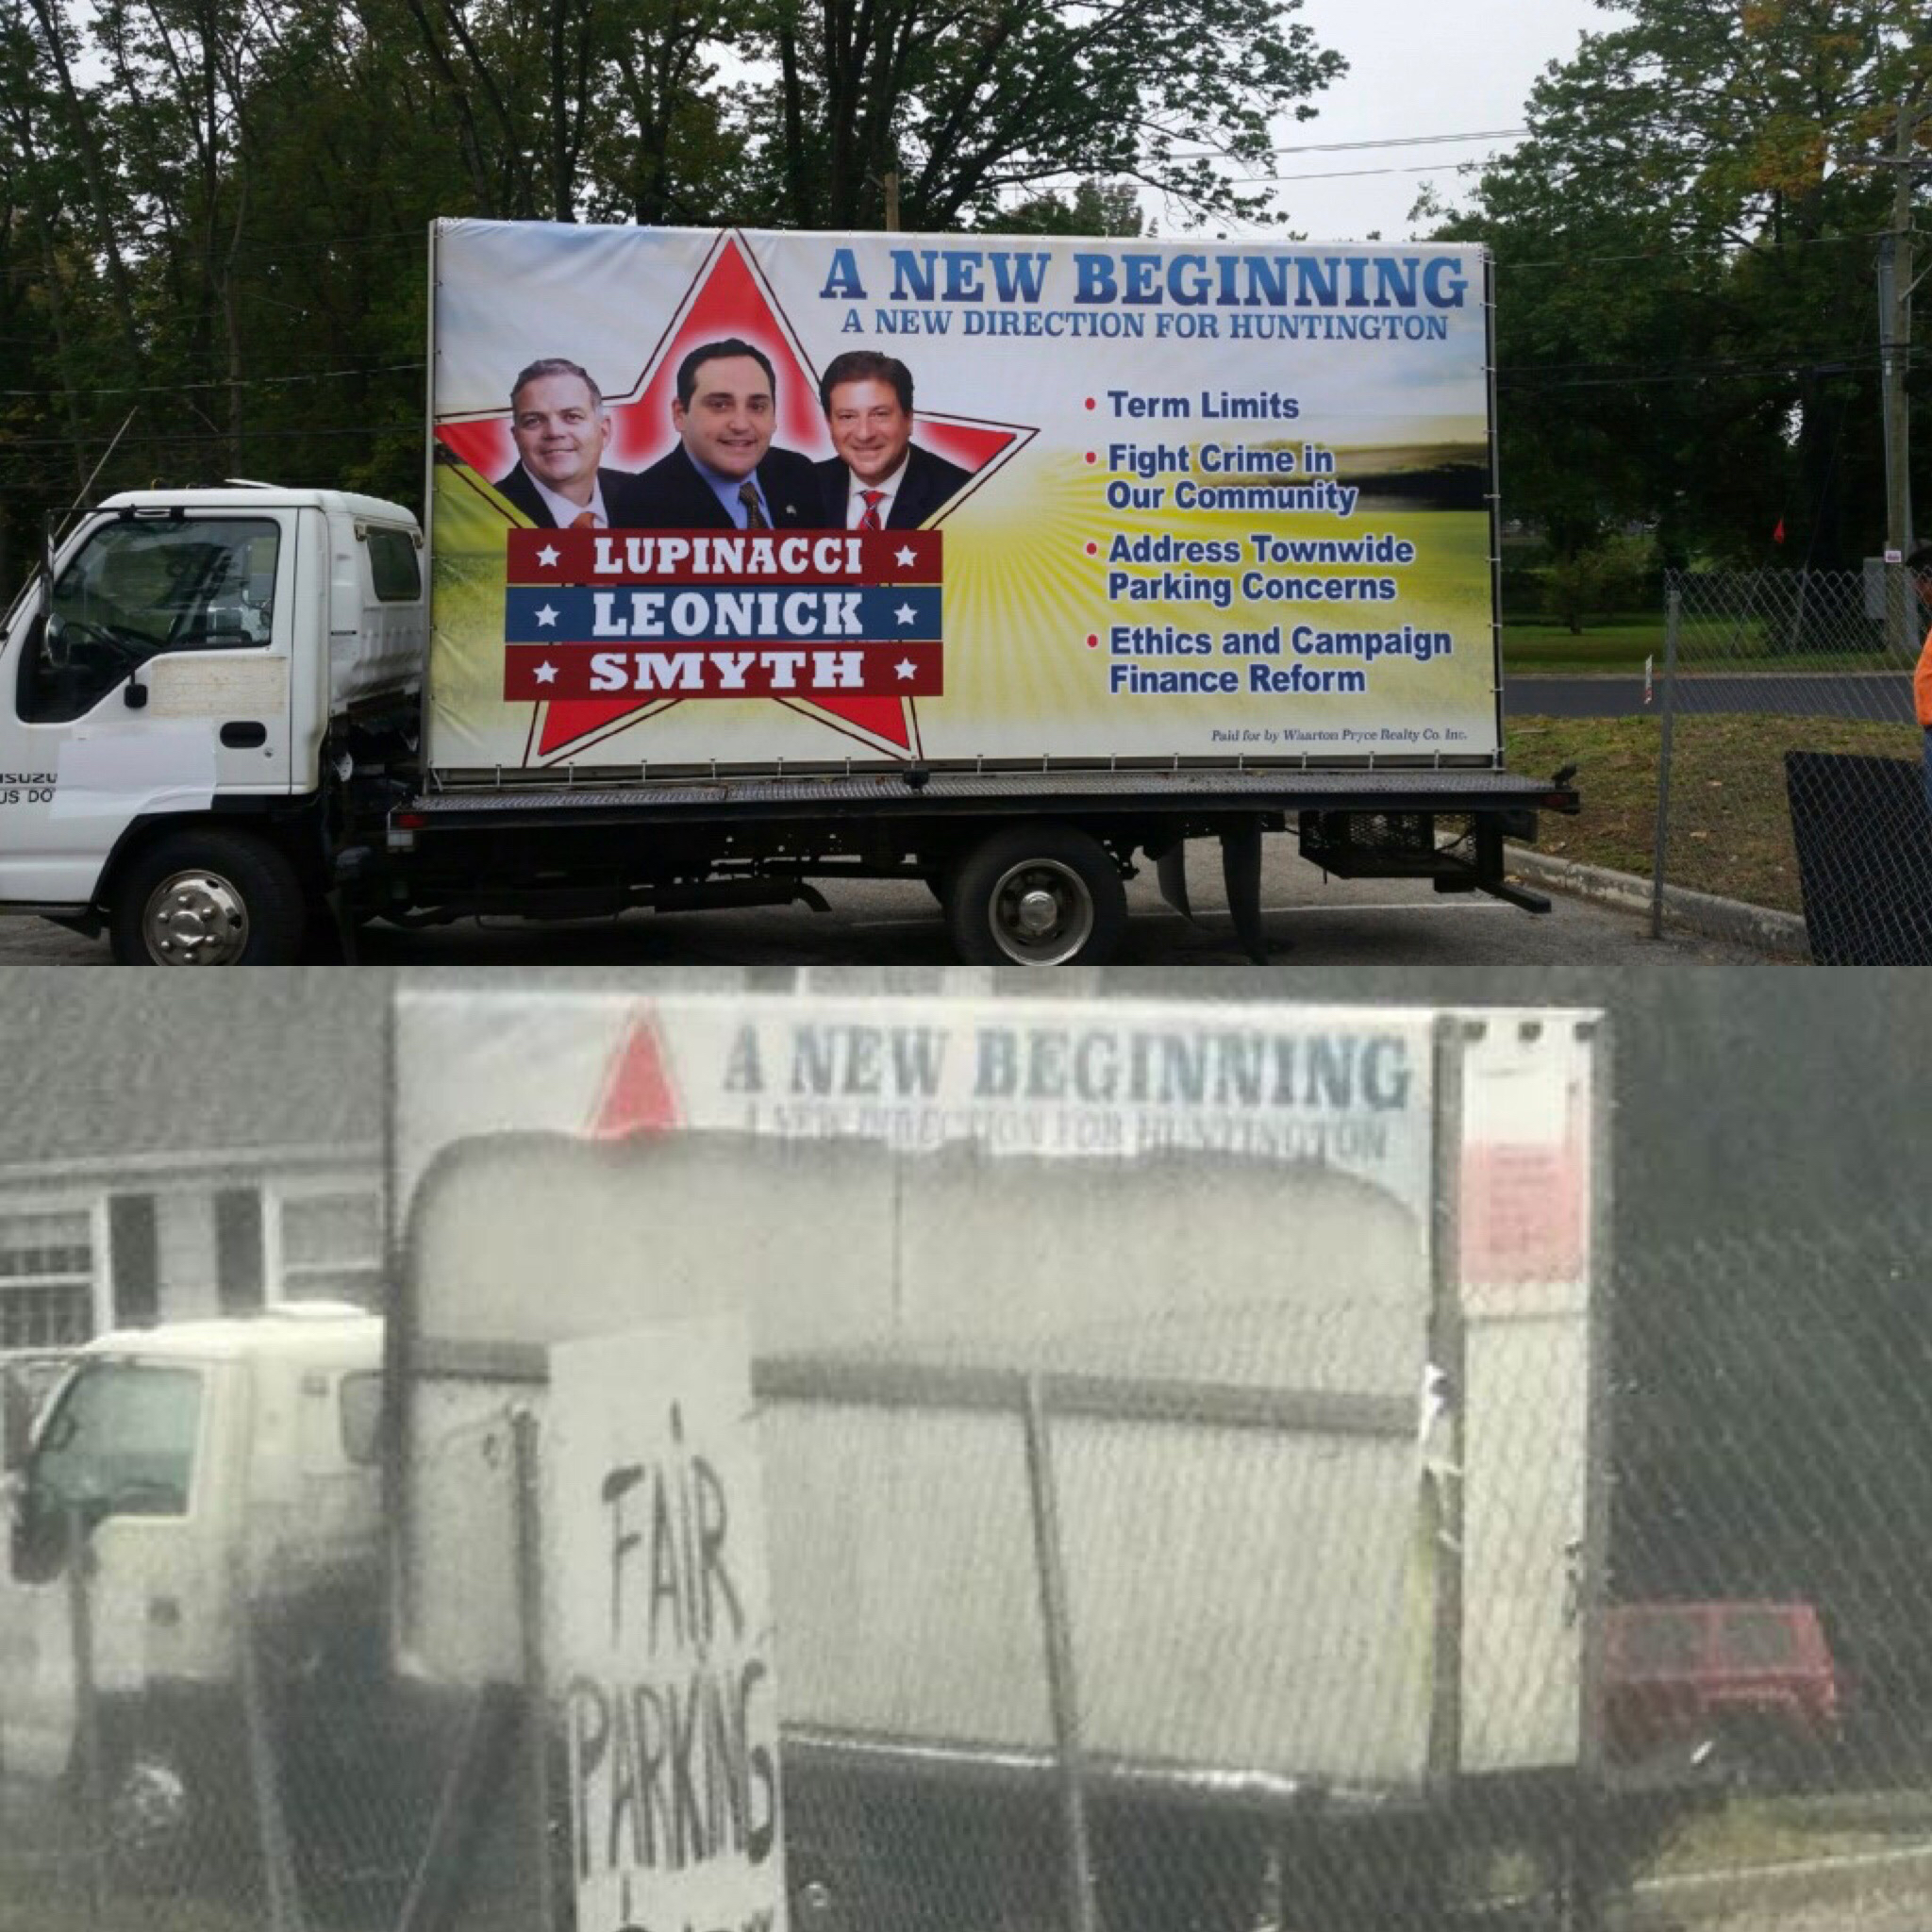 The before, above, and after of a truck with political banners on its sides parked on private property in Huntington that was vandalized over Columbus Day weekend.